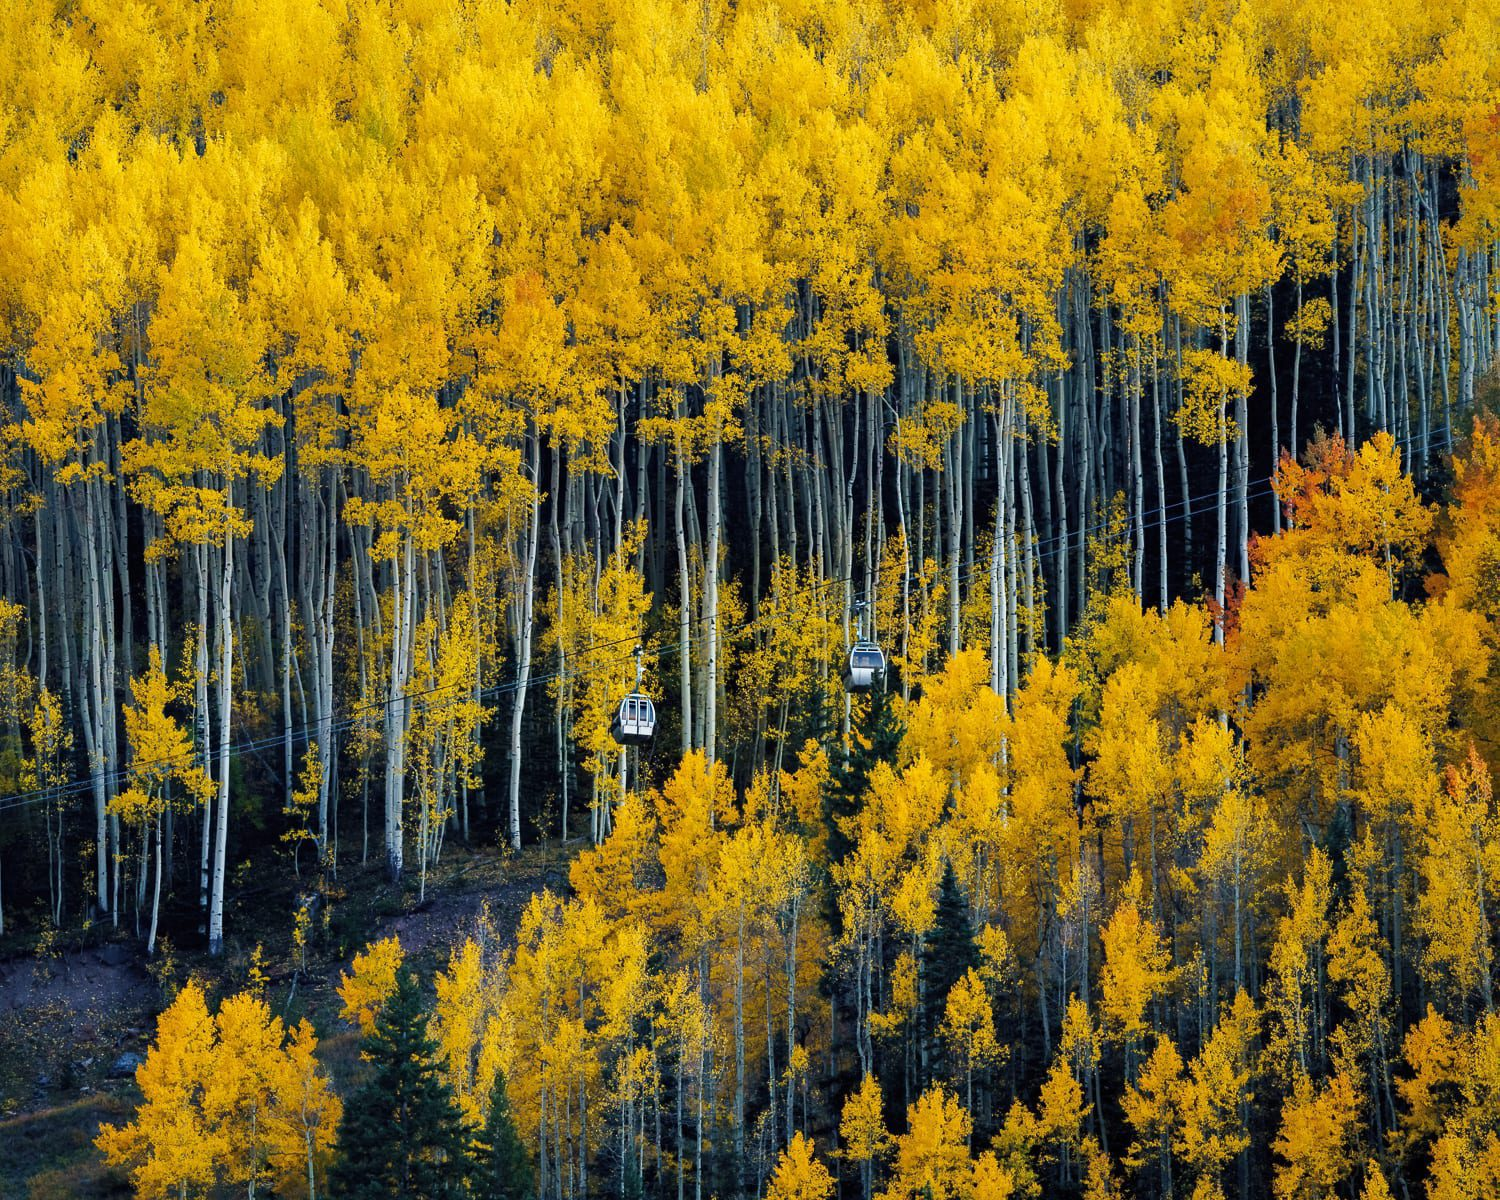 Ski lift gondolas in the middle of yellow aspens.